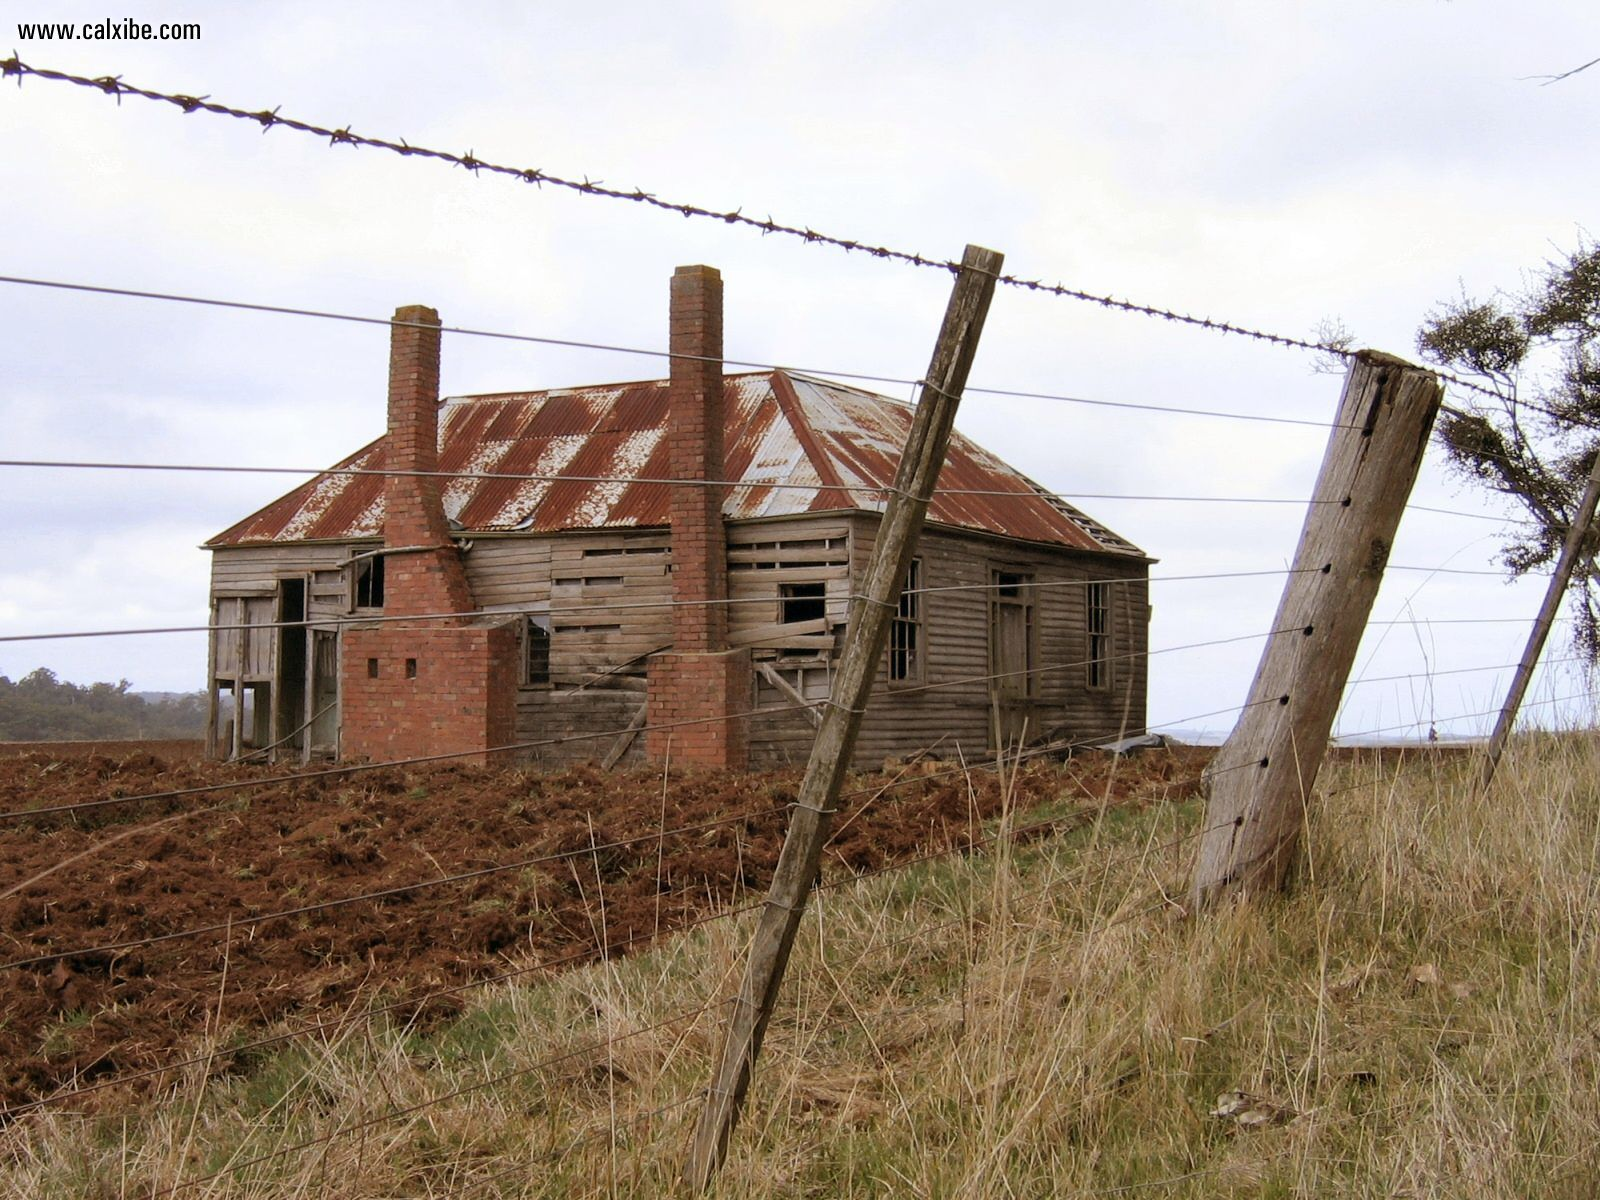 Miscellaneous Country Old Farmhouse picture nr 11481 1600x1200